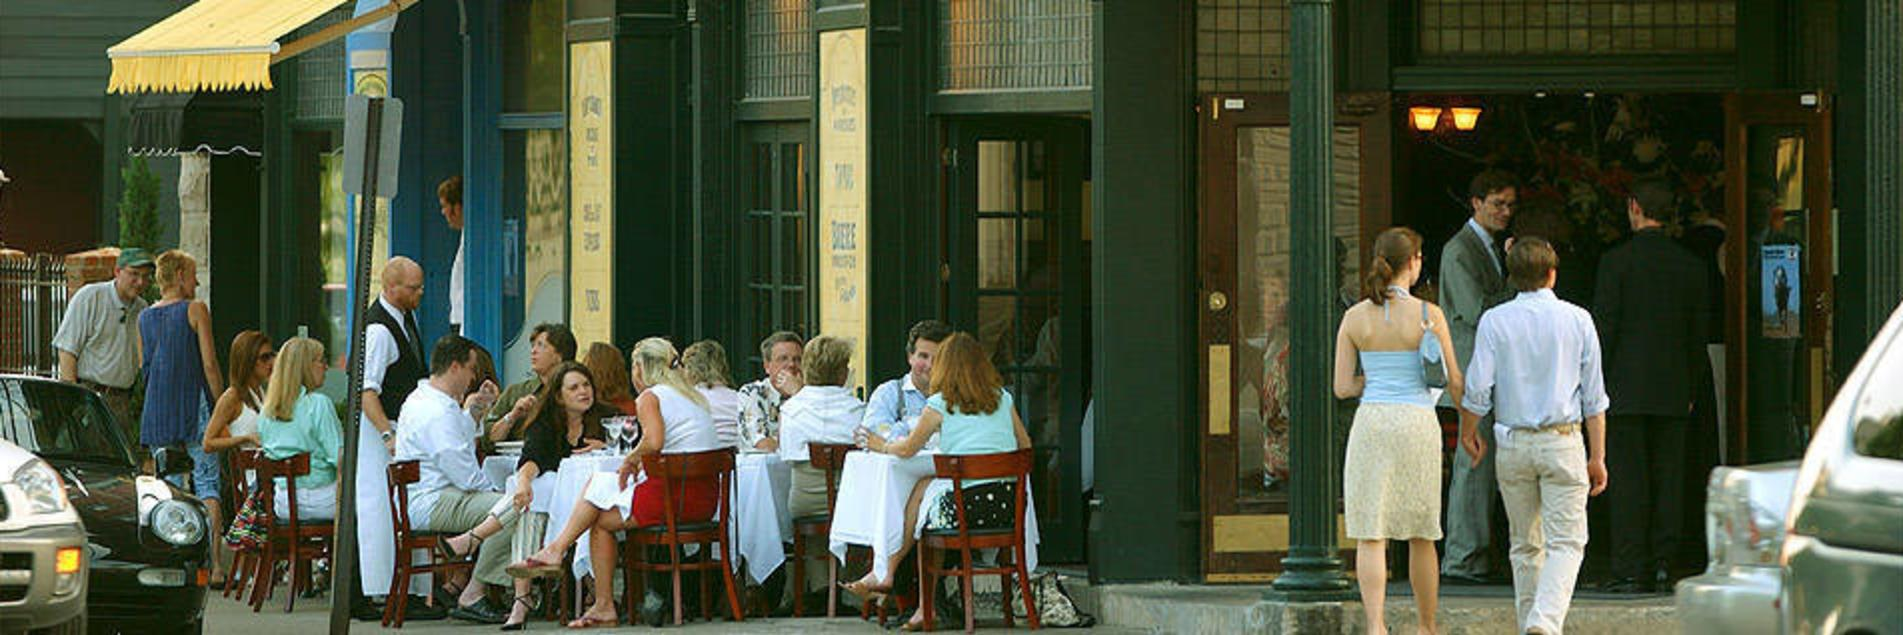 Downtown Restaurants In Lexington Ky Horse Capital Of The